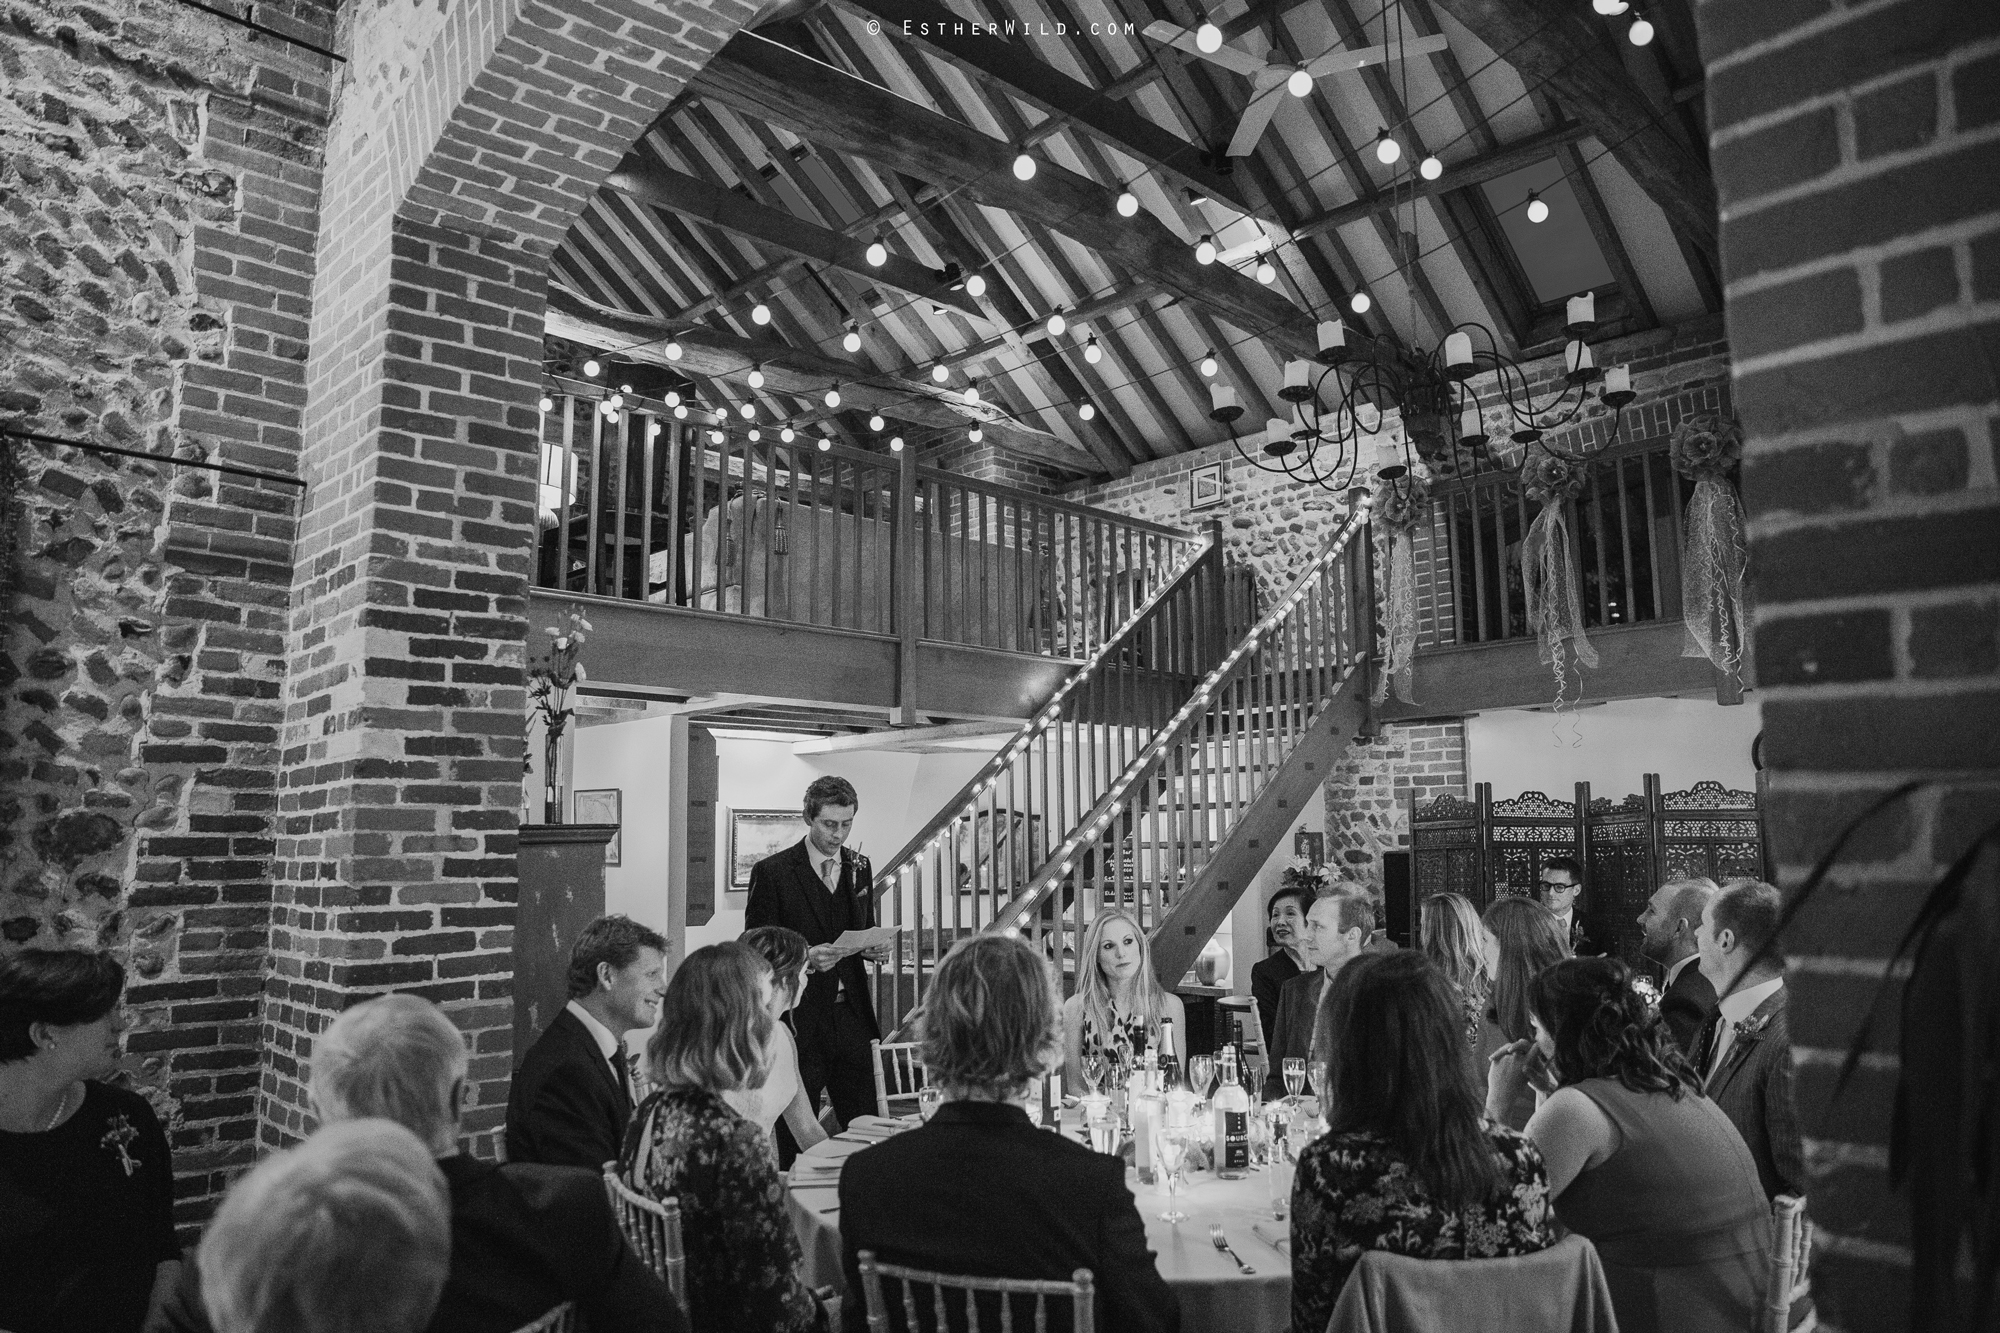 Wedding_Photographer_Chaucer_Barn_Holt_Norfolk_Country_Rustic_Venue_Copyright_Esther_Wild_IMG_1632-1.jpg